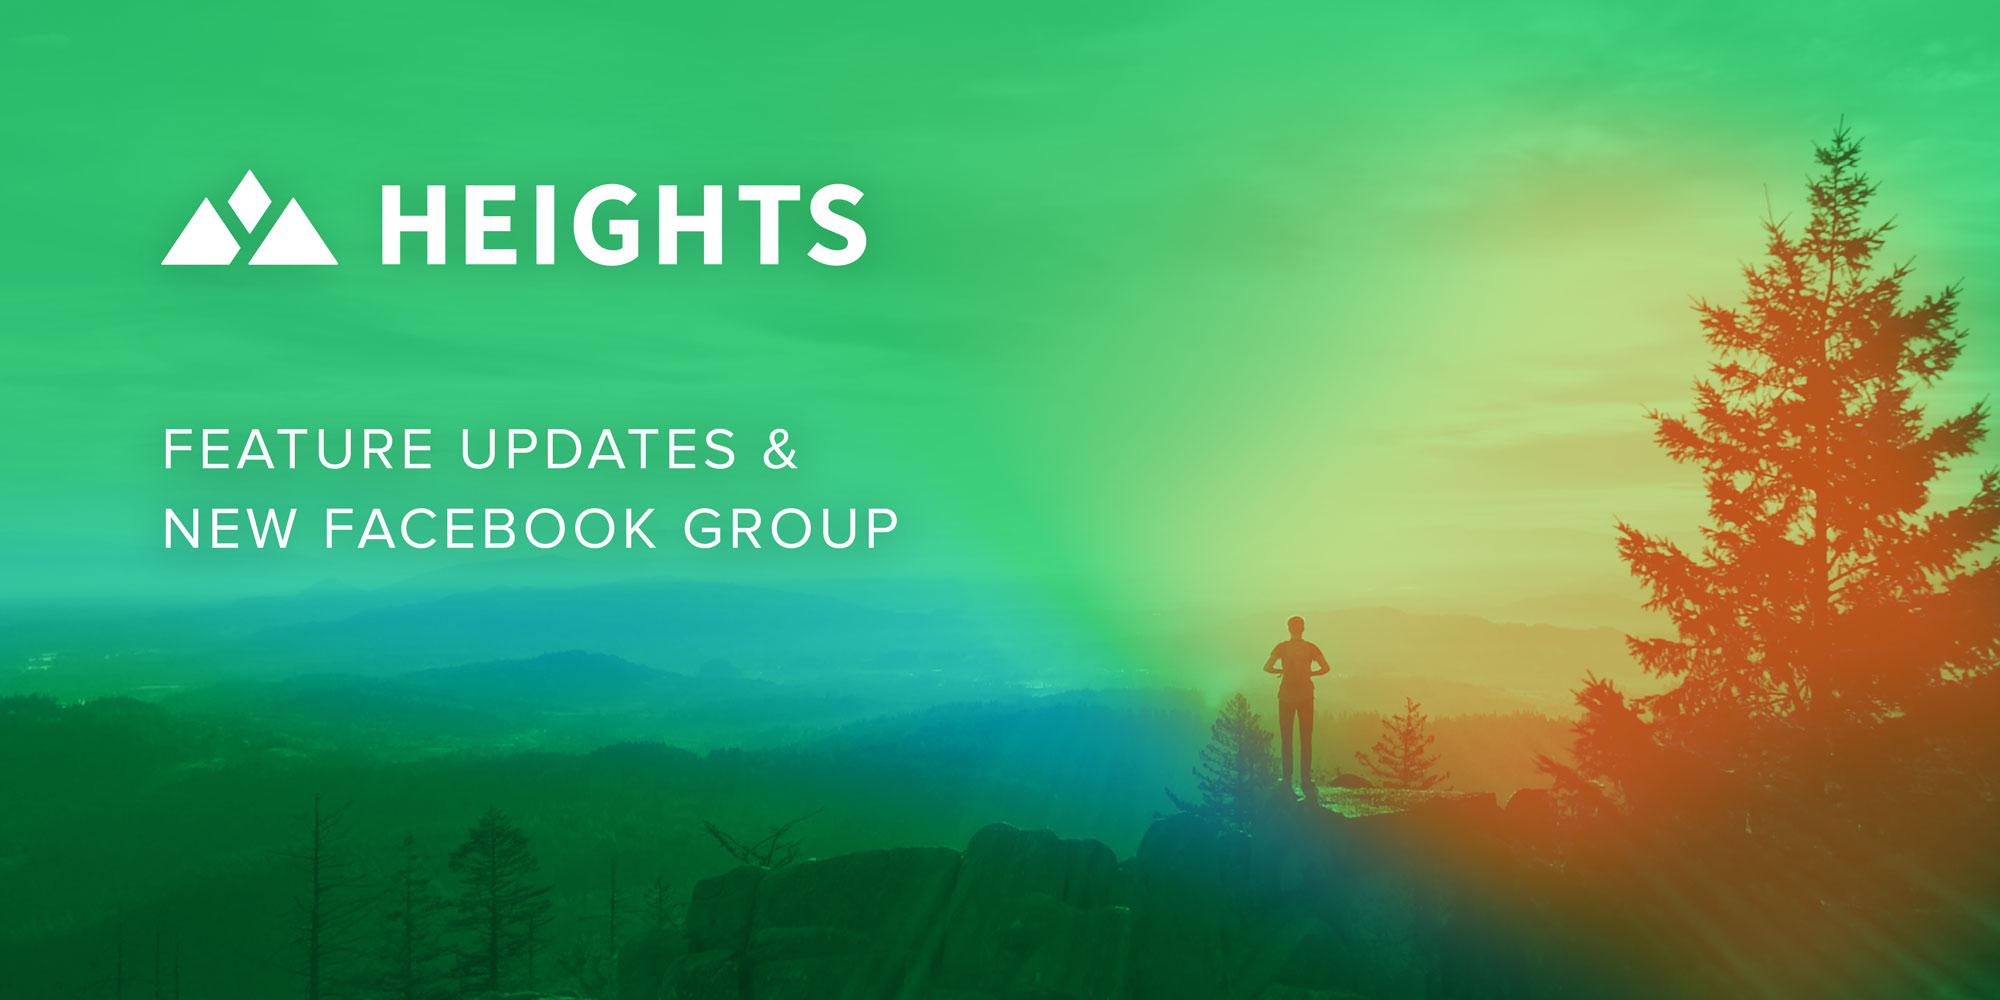 Heights Platform Introducing Modules, an Improved Support Experience, and a Heights Platform Facebook Group